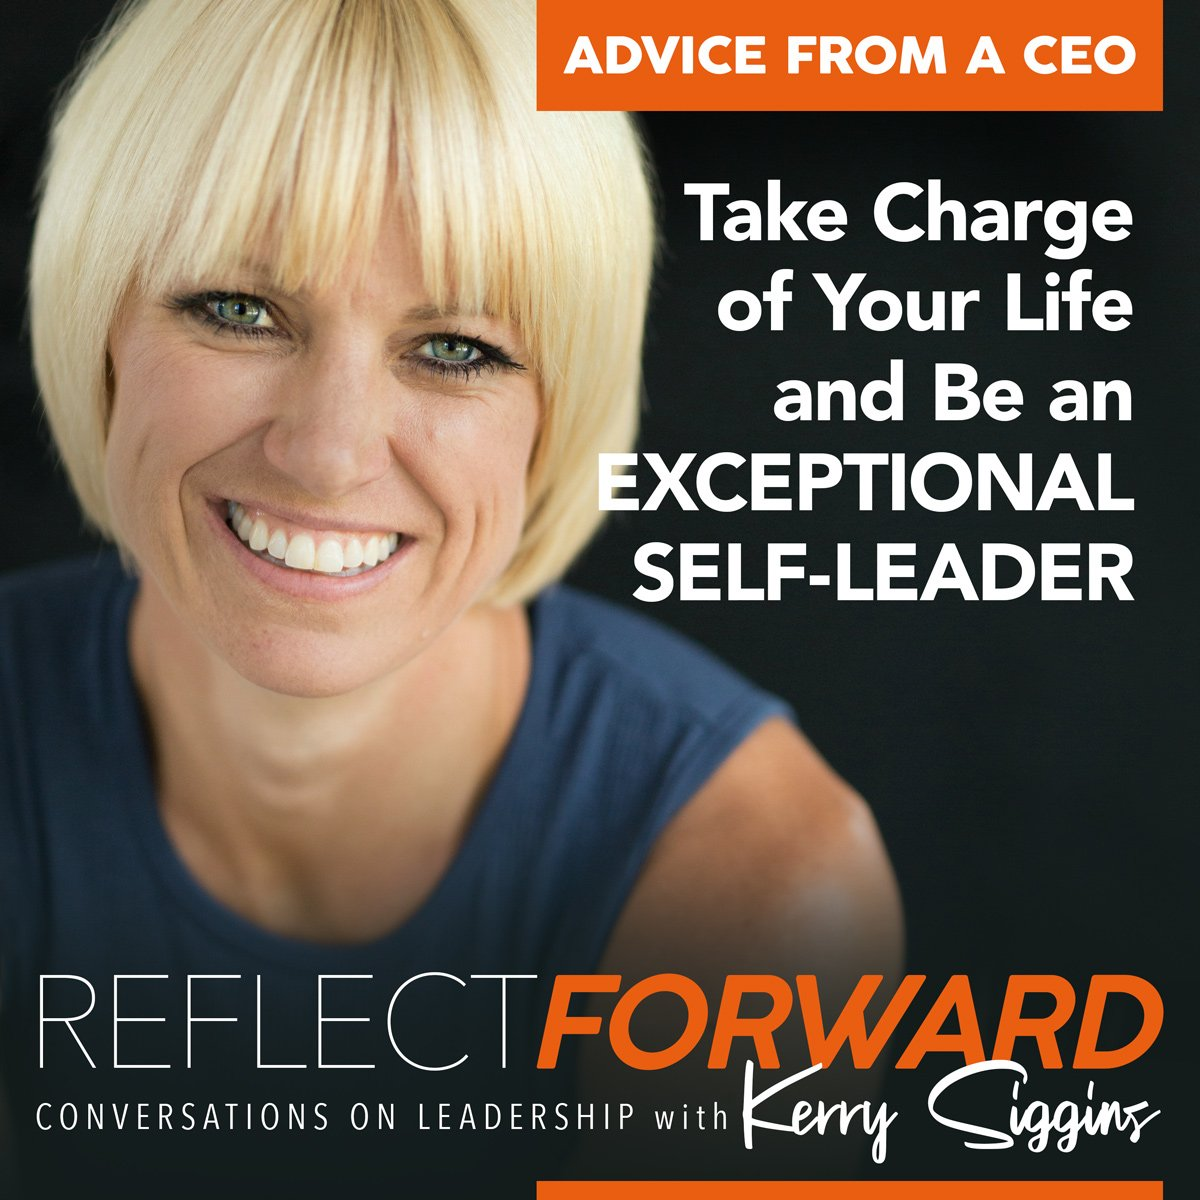 EP 23: Advice From a CEO: Take Charge of Your Life and Be an Exceptional Self-Leader